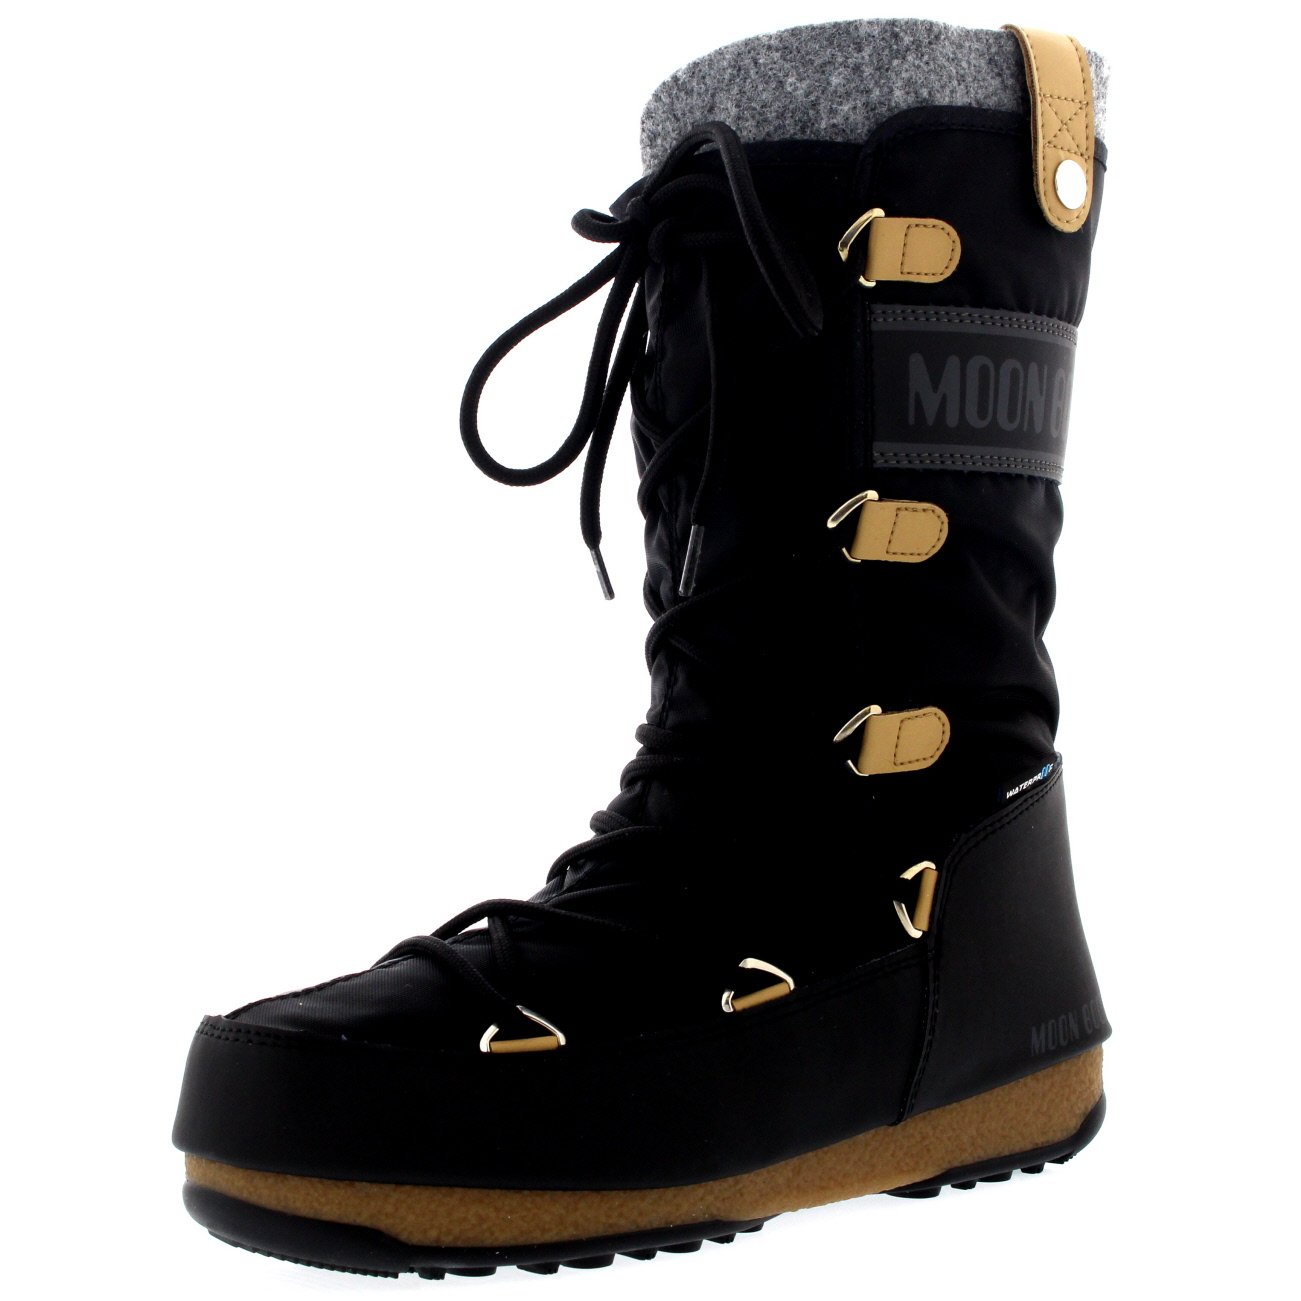 how to wear a moon boot